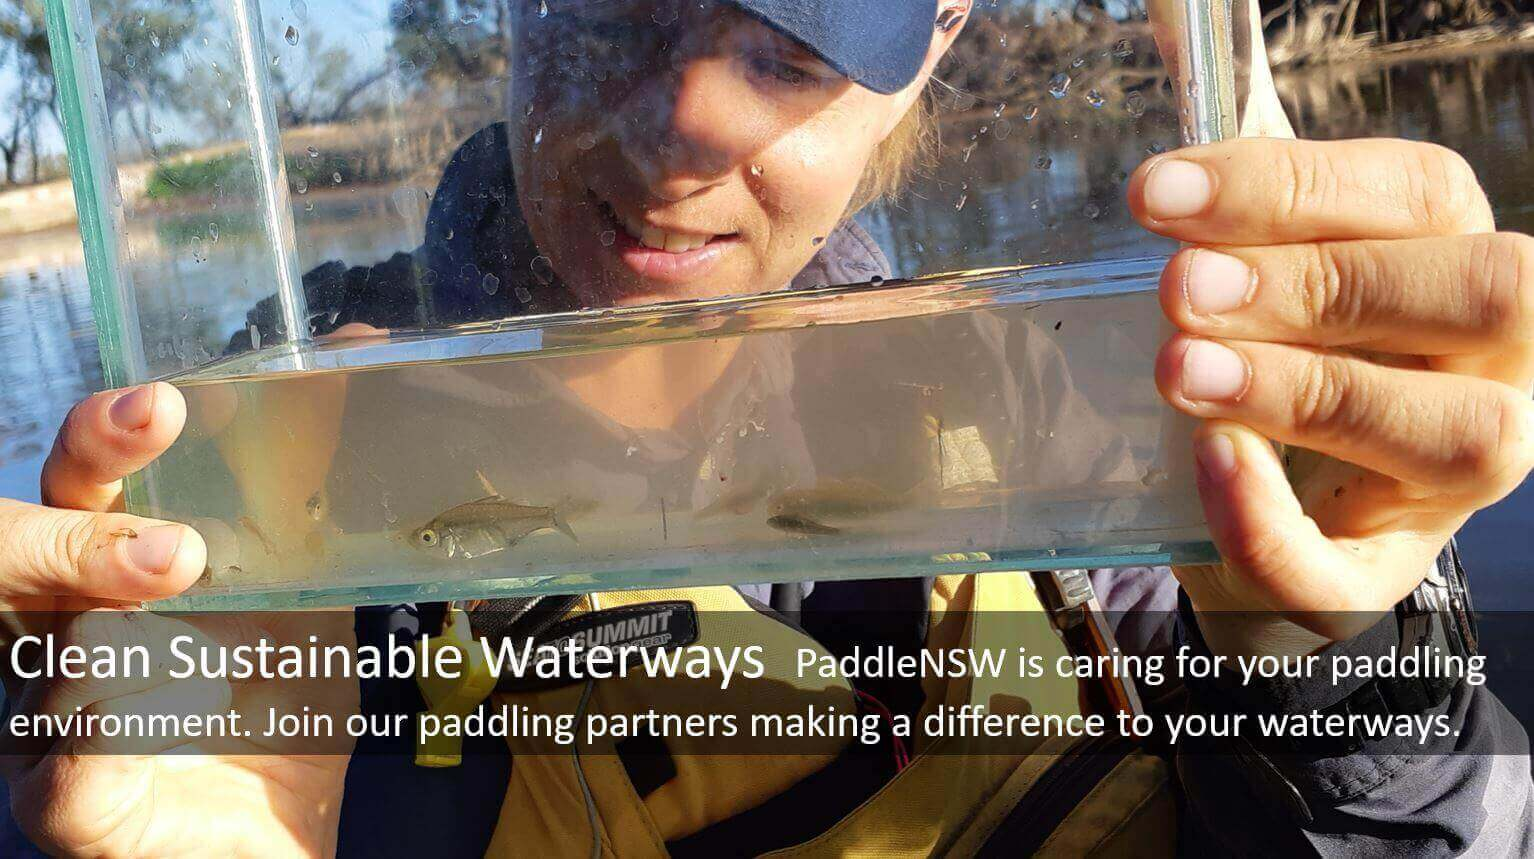 Paddler holding up and examining fish in clear tank, with text on Clean Sustainable Waterways